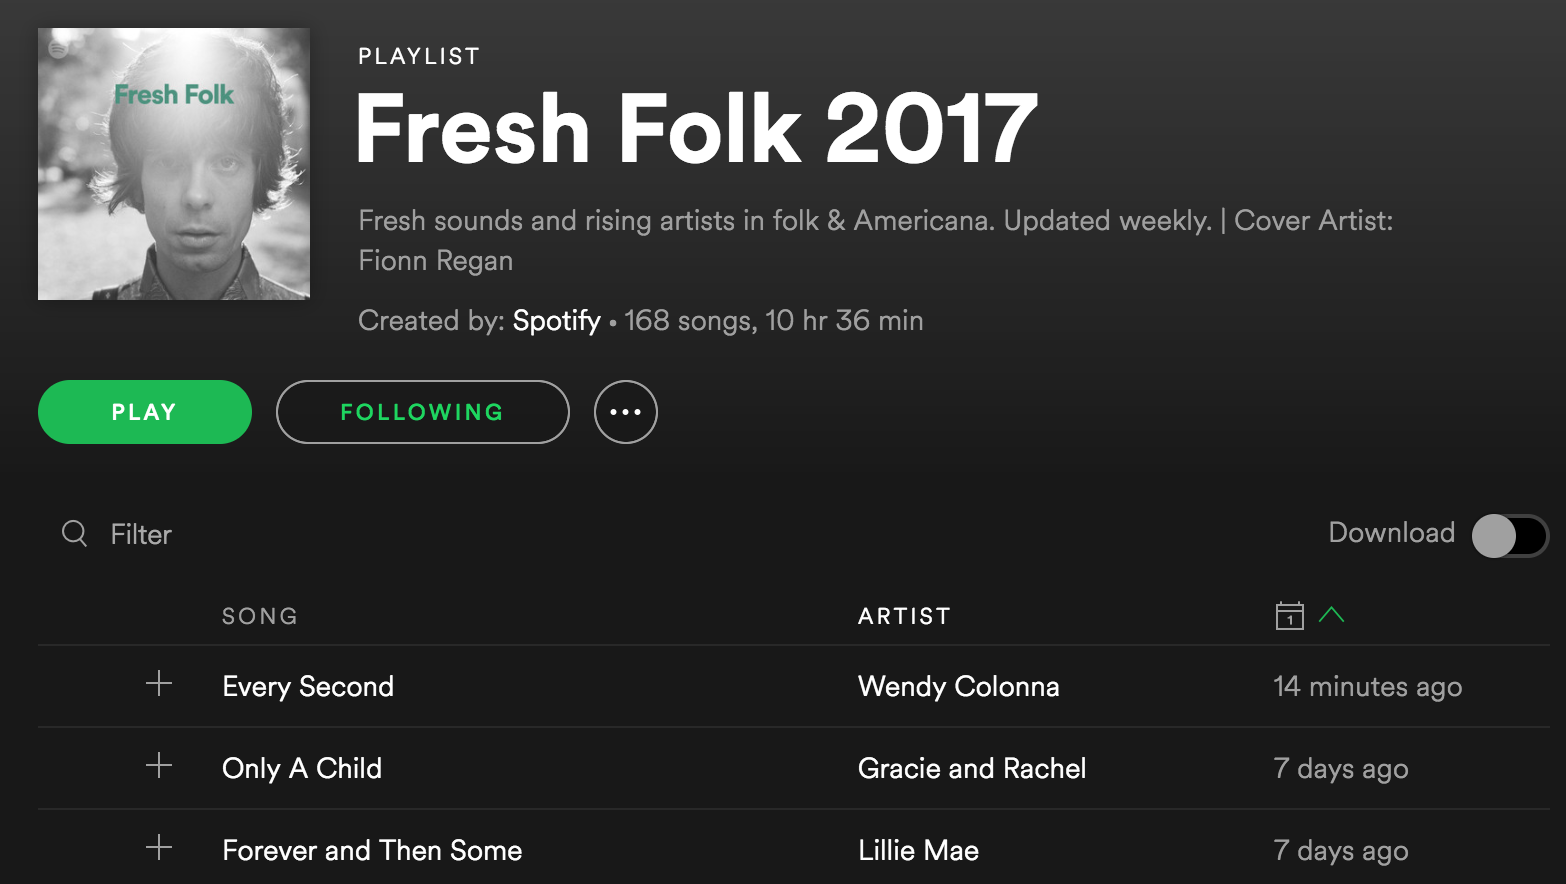 Spotify Fresh Folk 2017